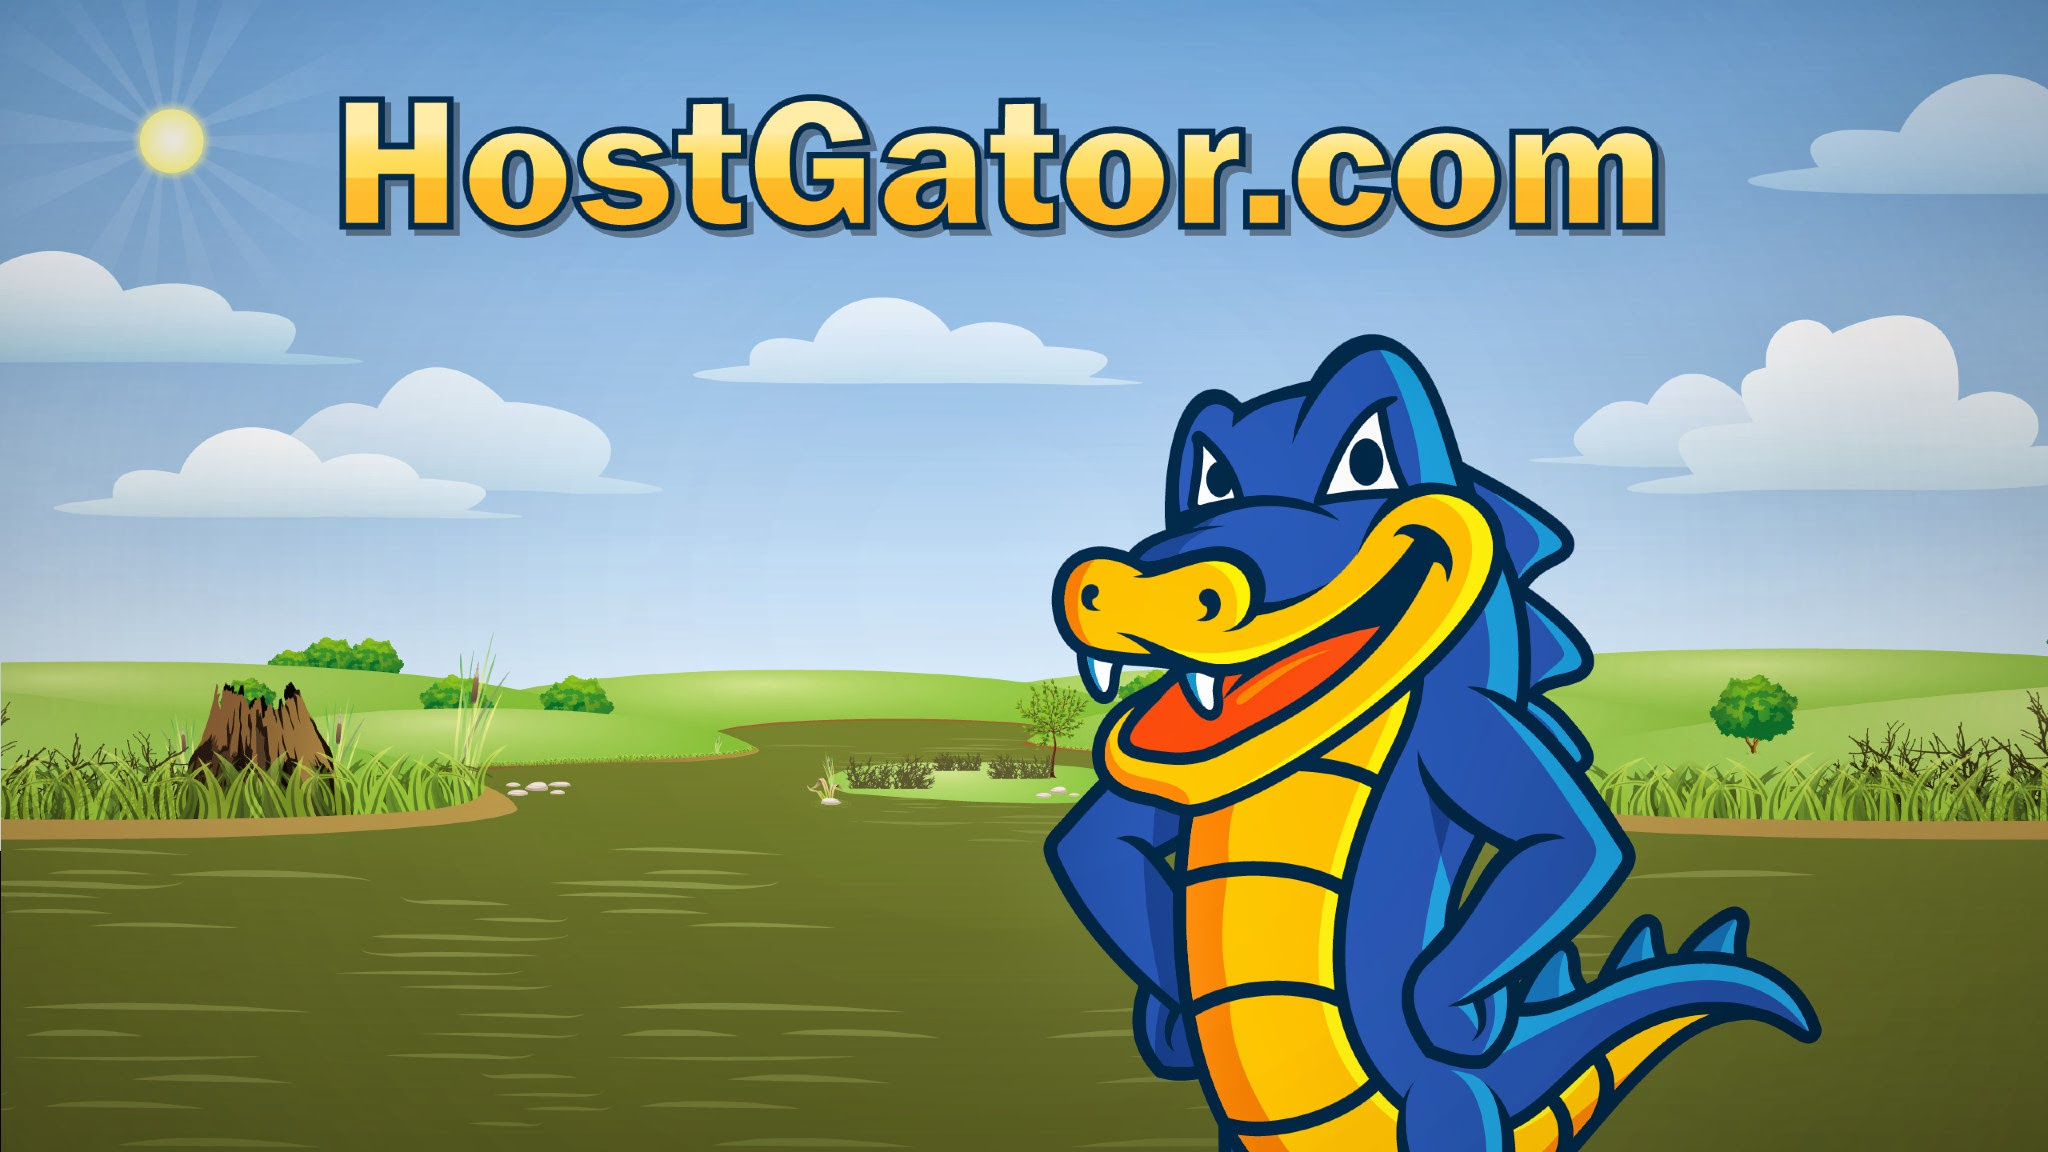 "<a href=""//partners.hostgator.com/c/387806/178129/3094""><img src=""//a.impactradius-go.com/display-ad/3094-178129"" border=""0"" alt="""" width=""125"" height=""125""/></a><img height=""0"" width=""0"" src=""//partners.hostgator.com/i/387806/178129/3094"" style=""position:absolute;visibility:hidden;"" border=""0"" />"